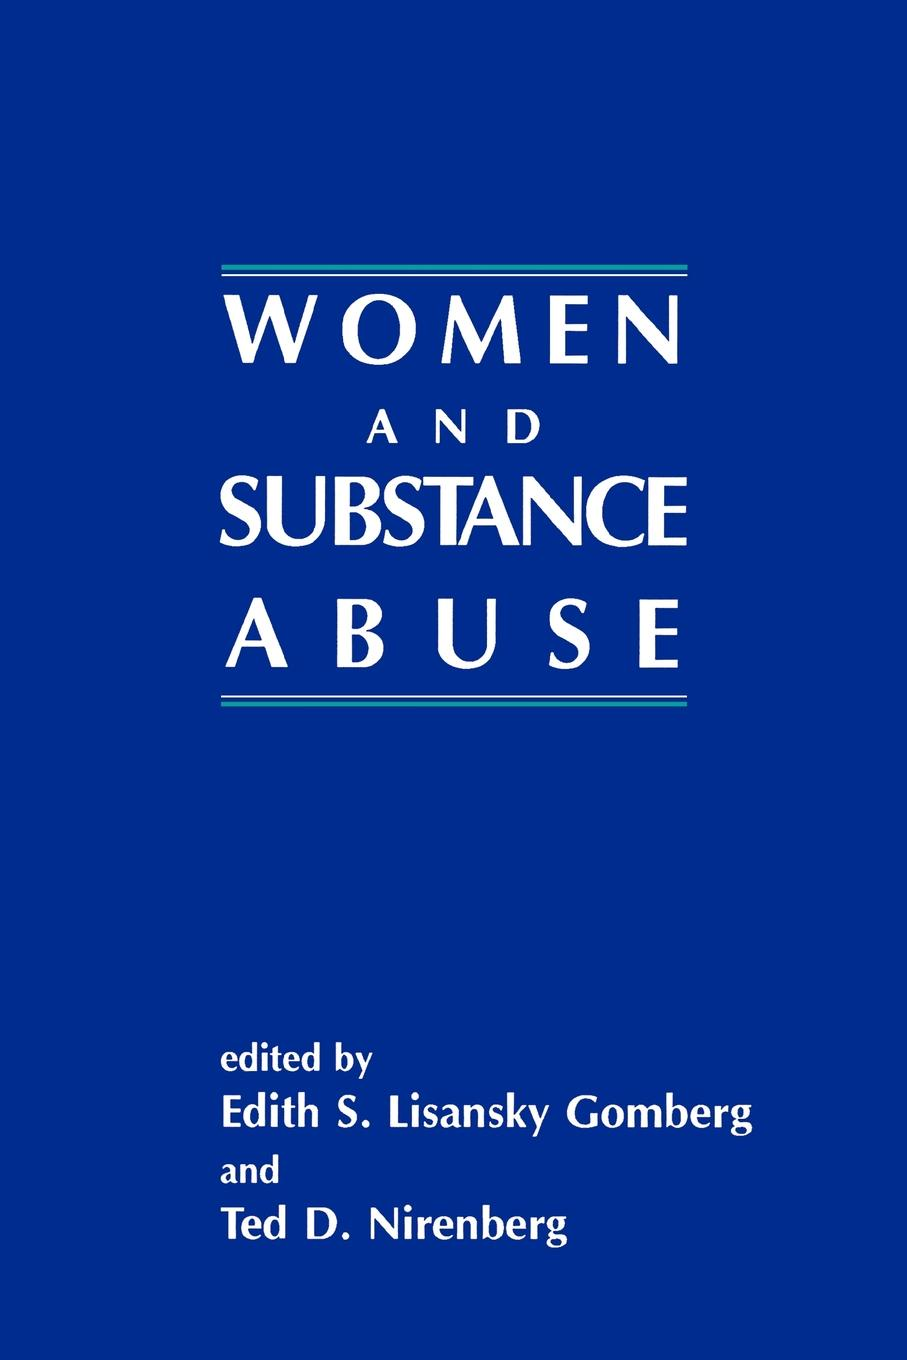 Edith S. Lisansky Gomberg, Ted D. Nirenberg, Edith Lisansky Gomberg Women and Substance Abuse maeve wallace irish students views on school substance abuse prevention programme